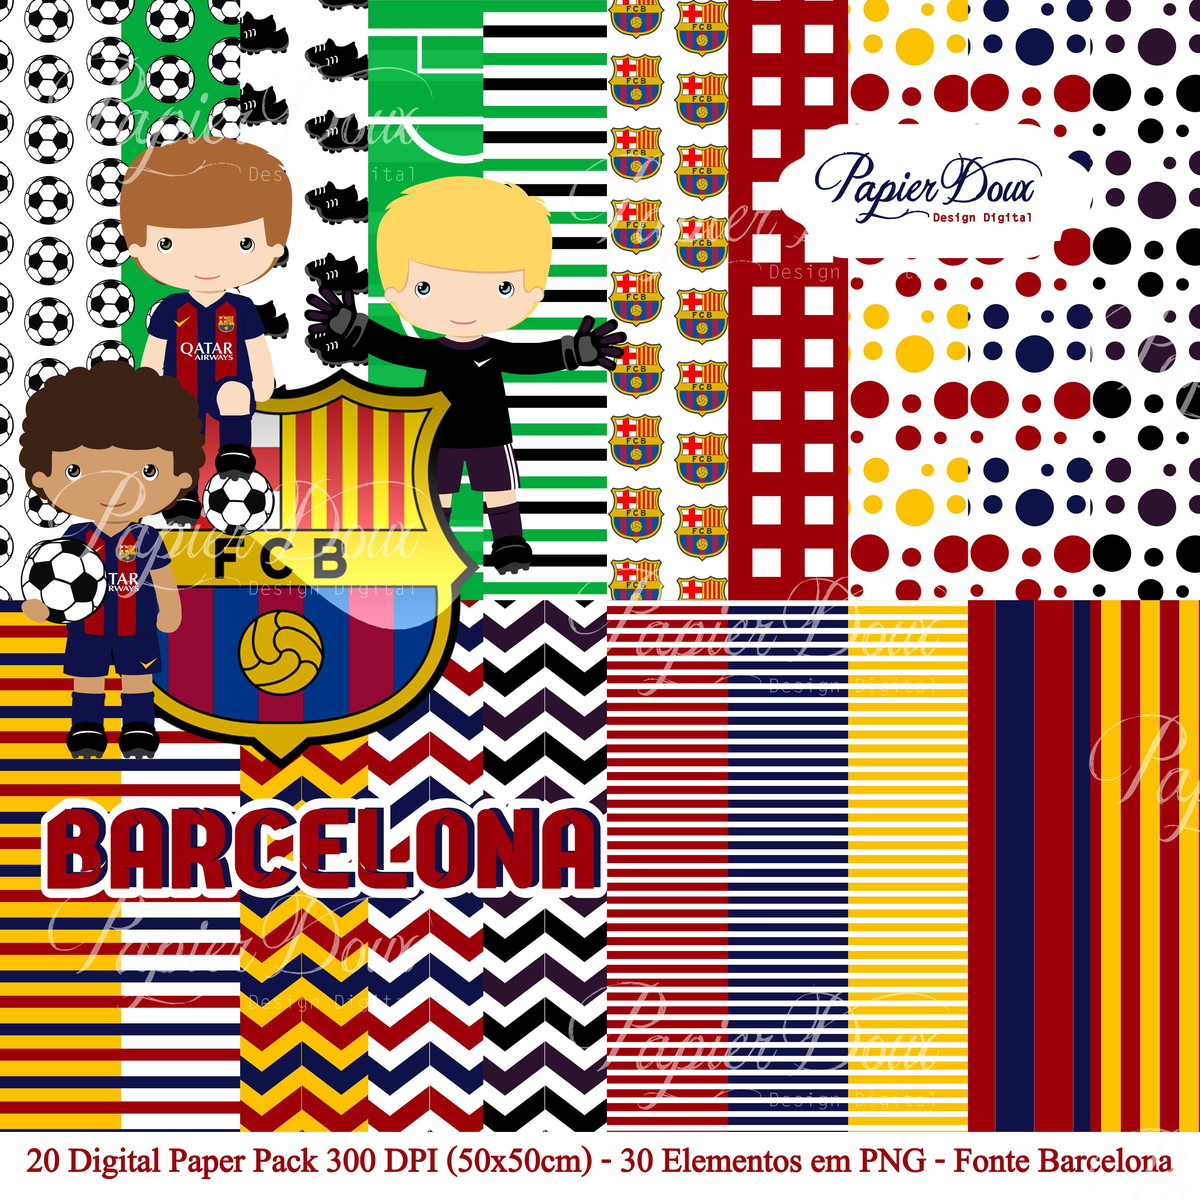 Kit Digital Futebol Barcelona no Elo7  99b6a340db0a7